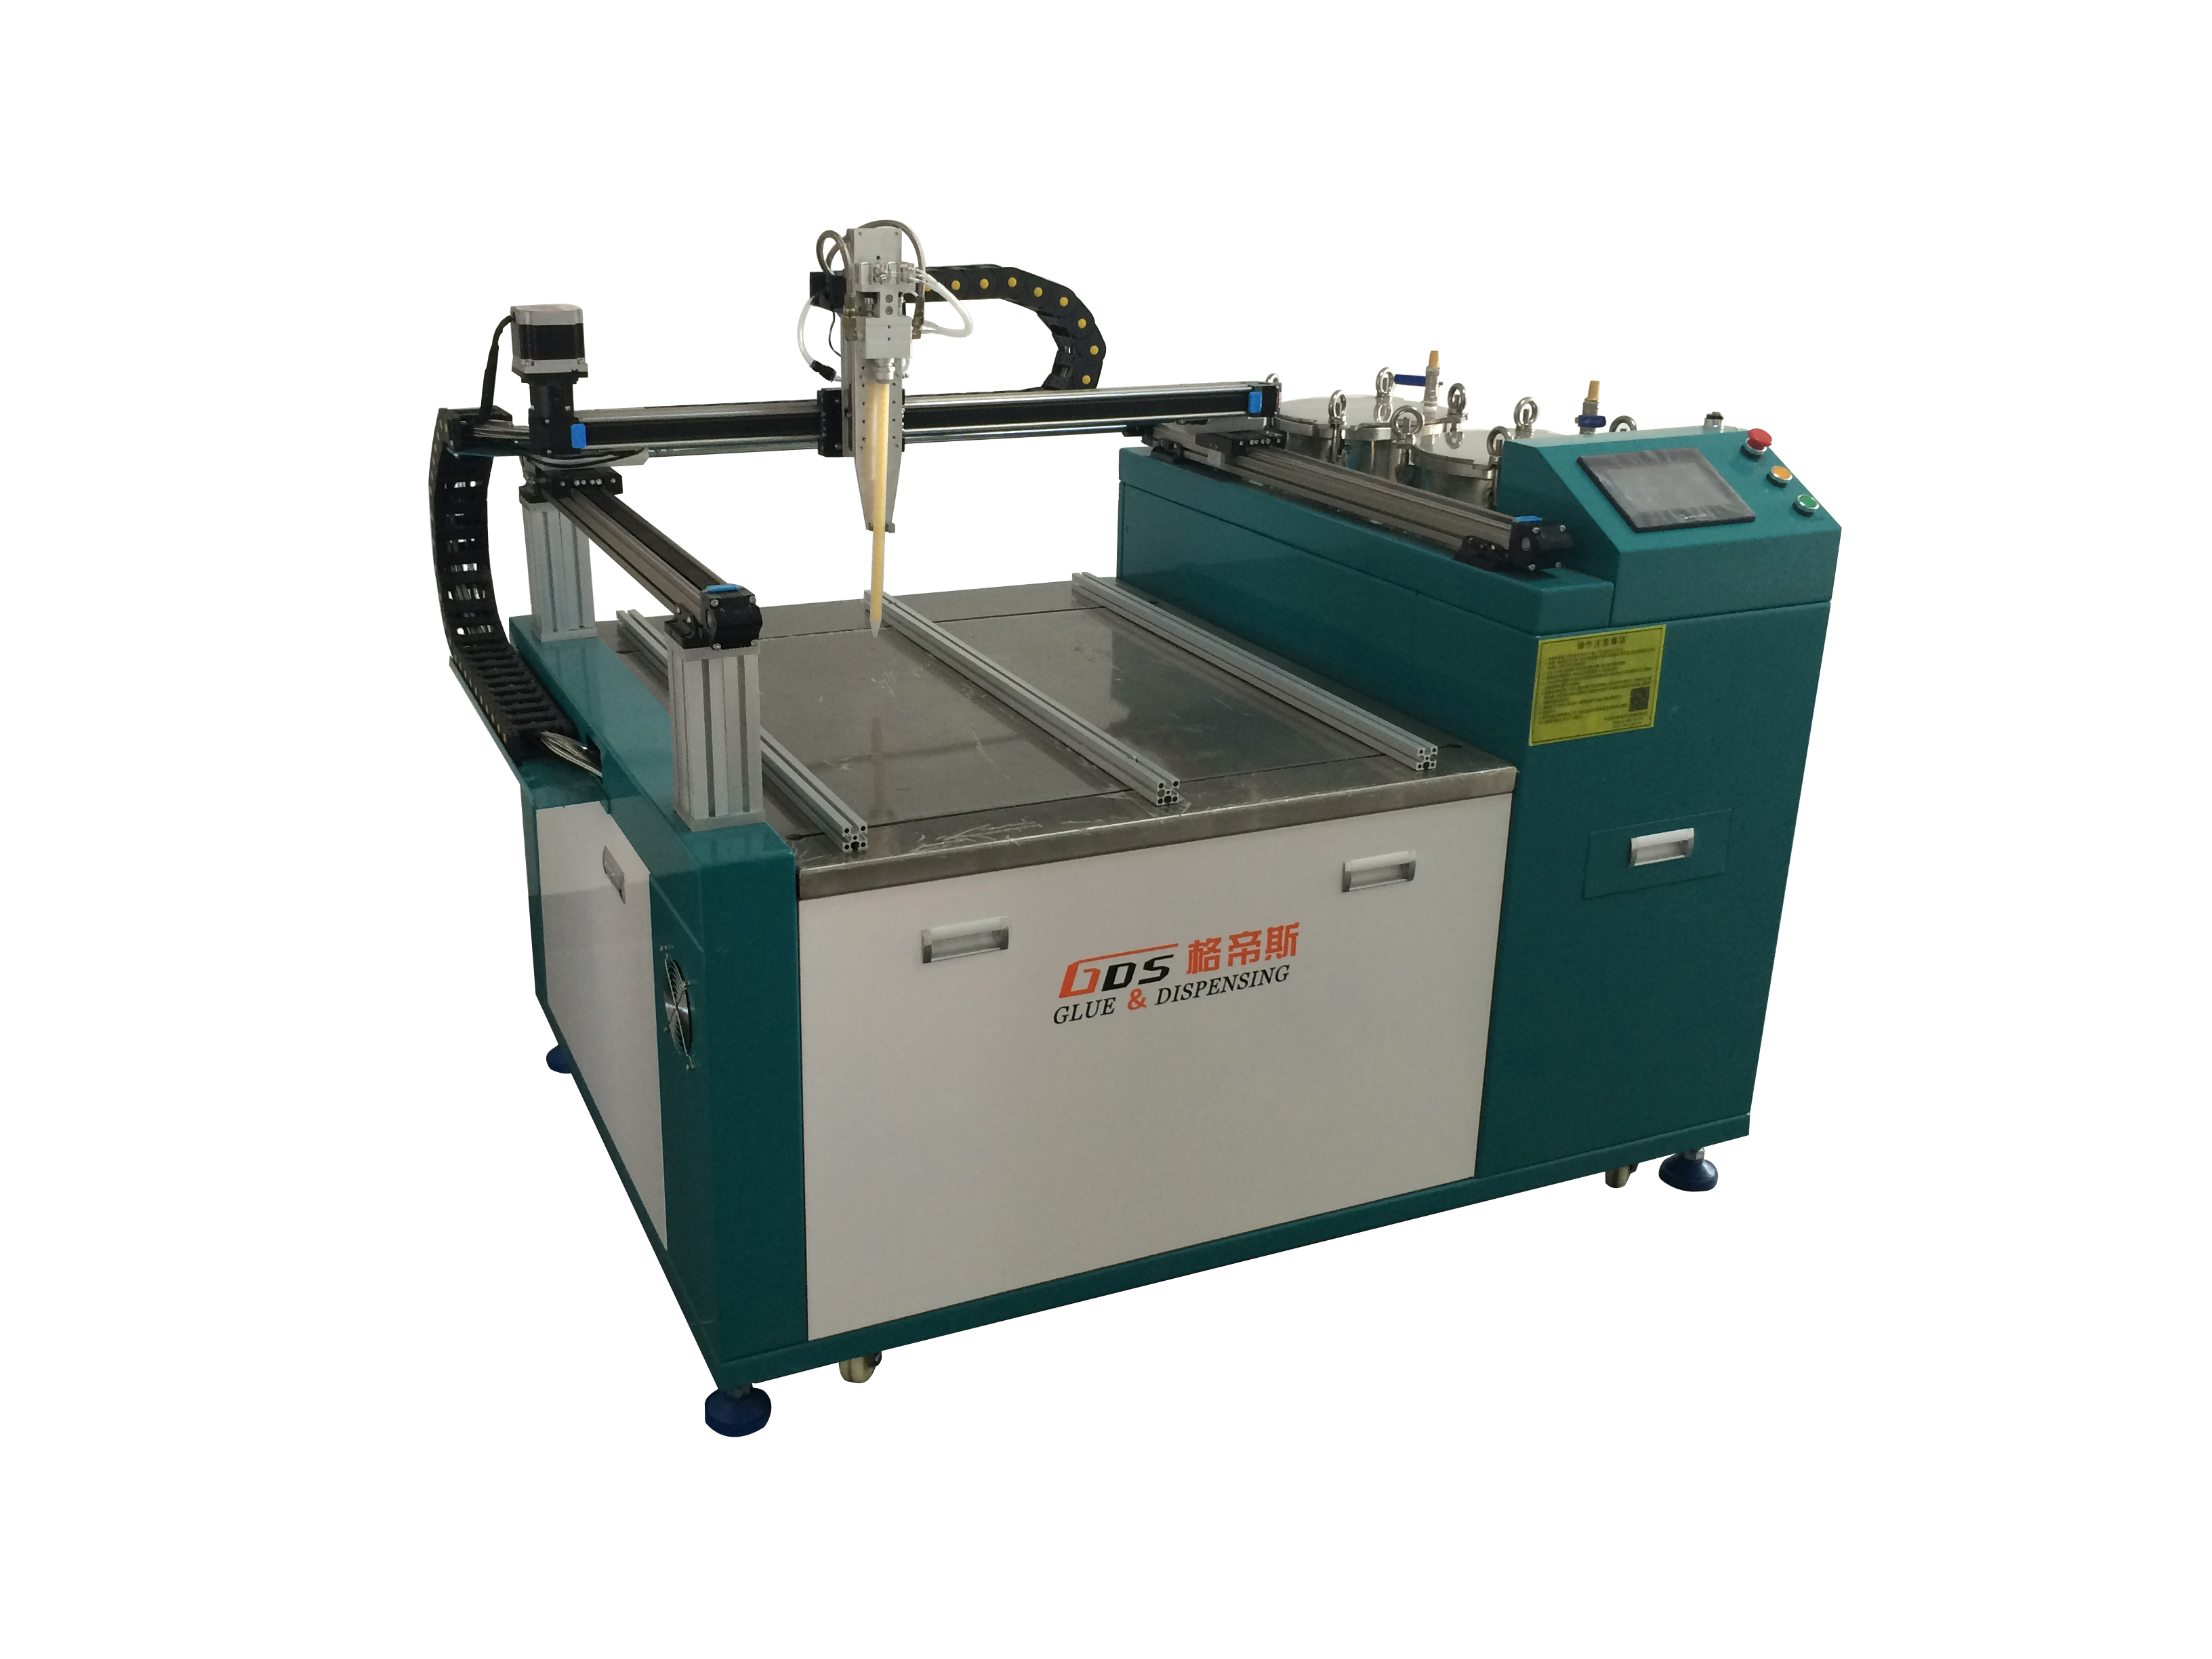 MG-8080/MG-1280 Full Automatic AB Glue Mixing & Dispensing Machine